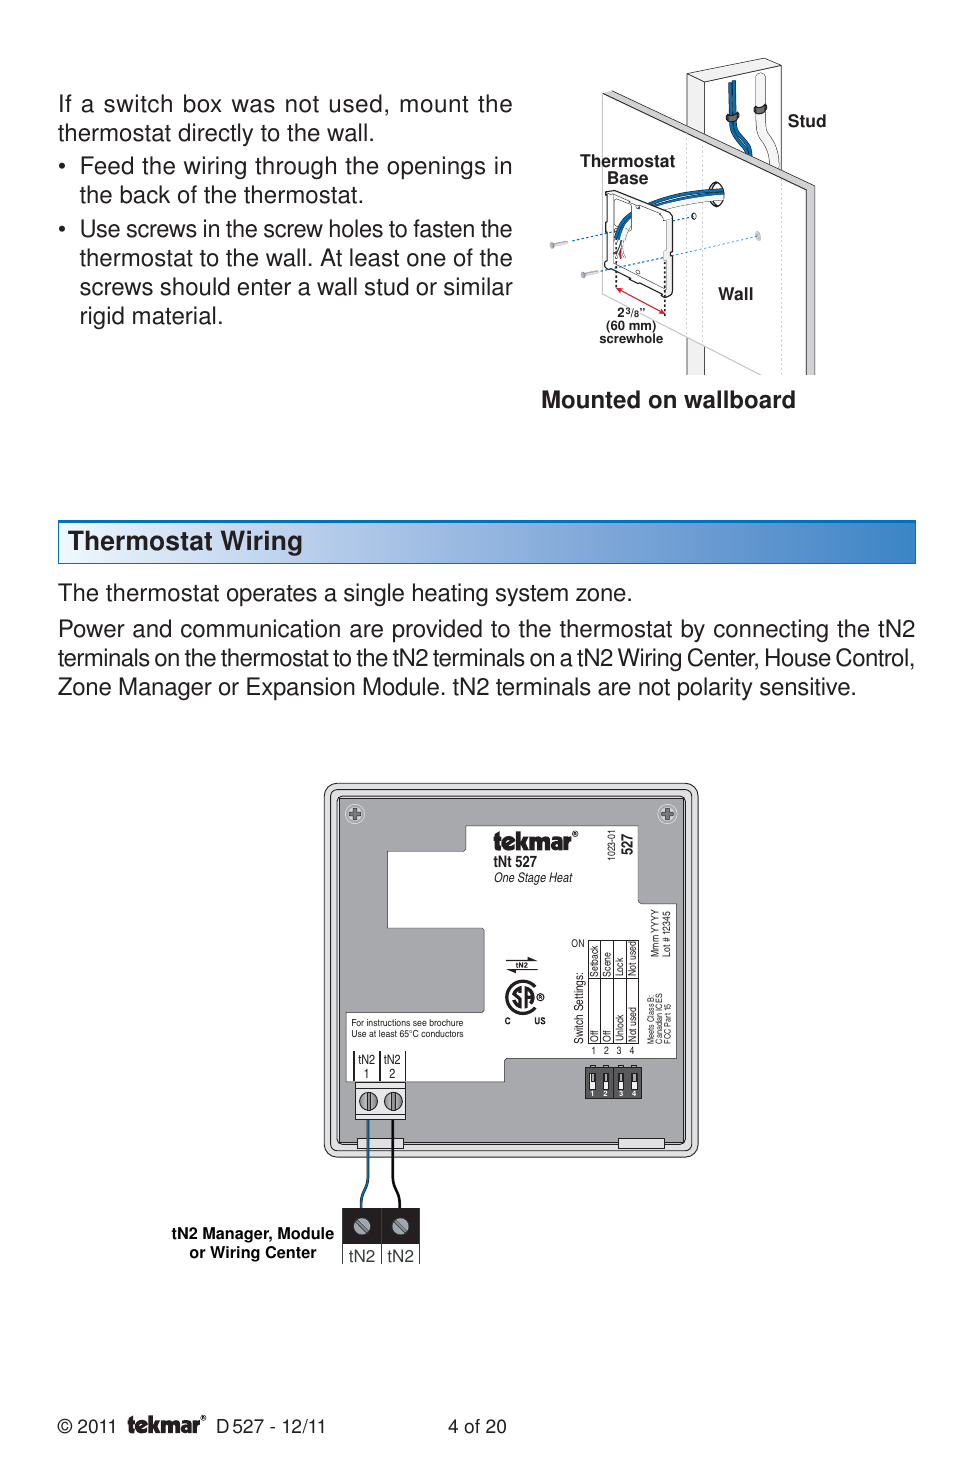 Thermostat Wiring Mounted On Wallboard Stud Tekmar 527 Diagram Installation User Manual Page 4 20